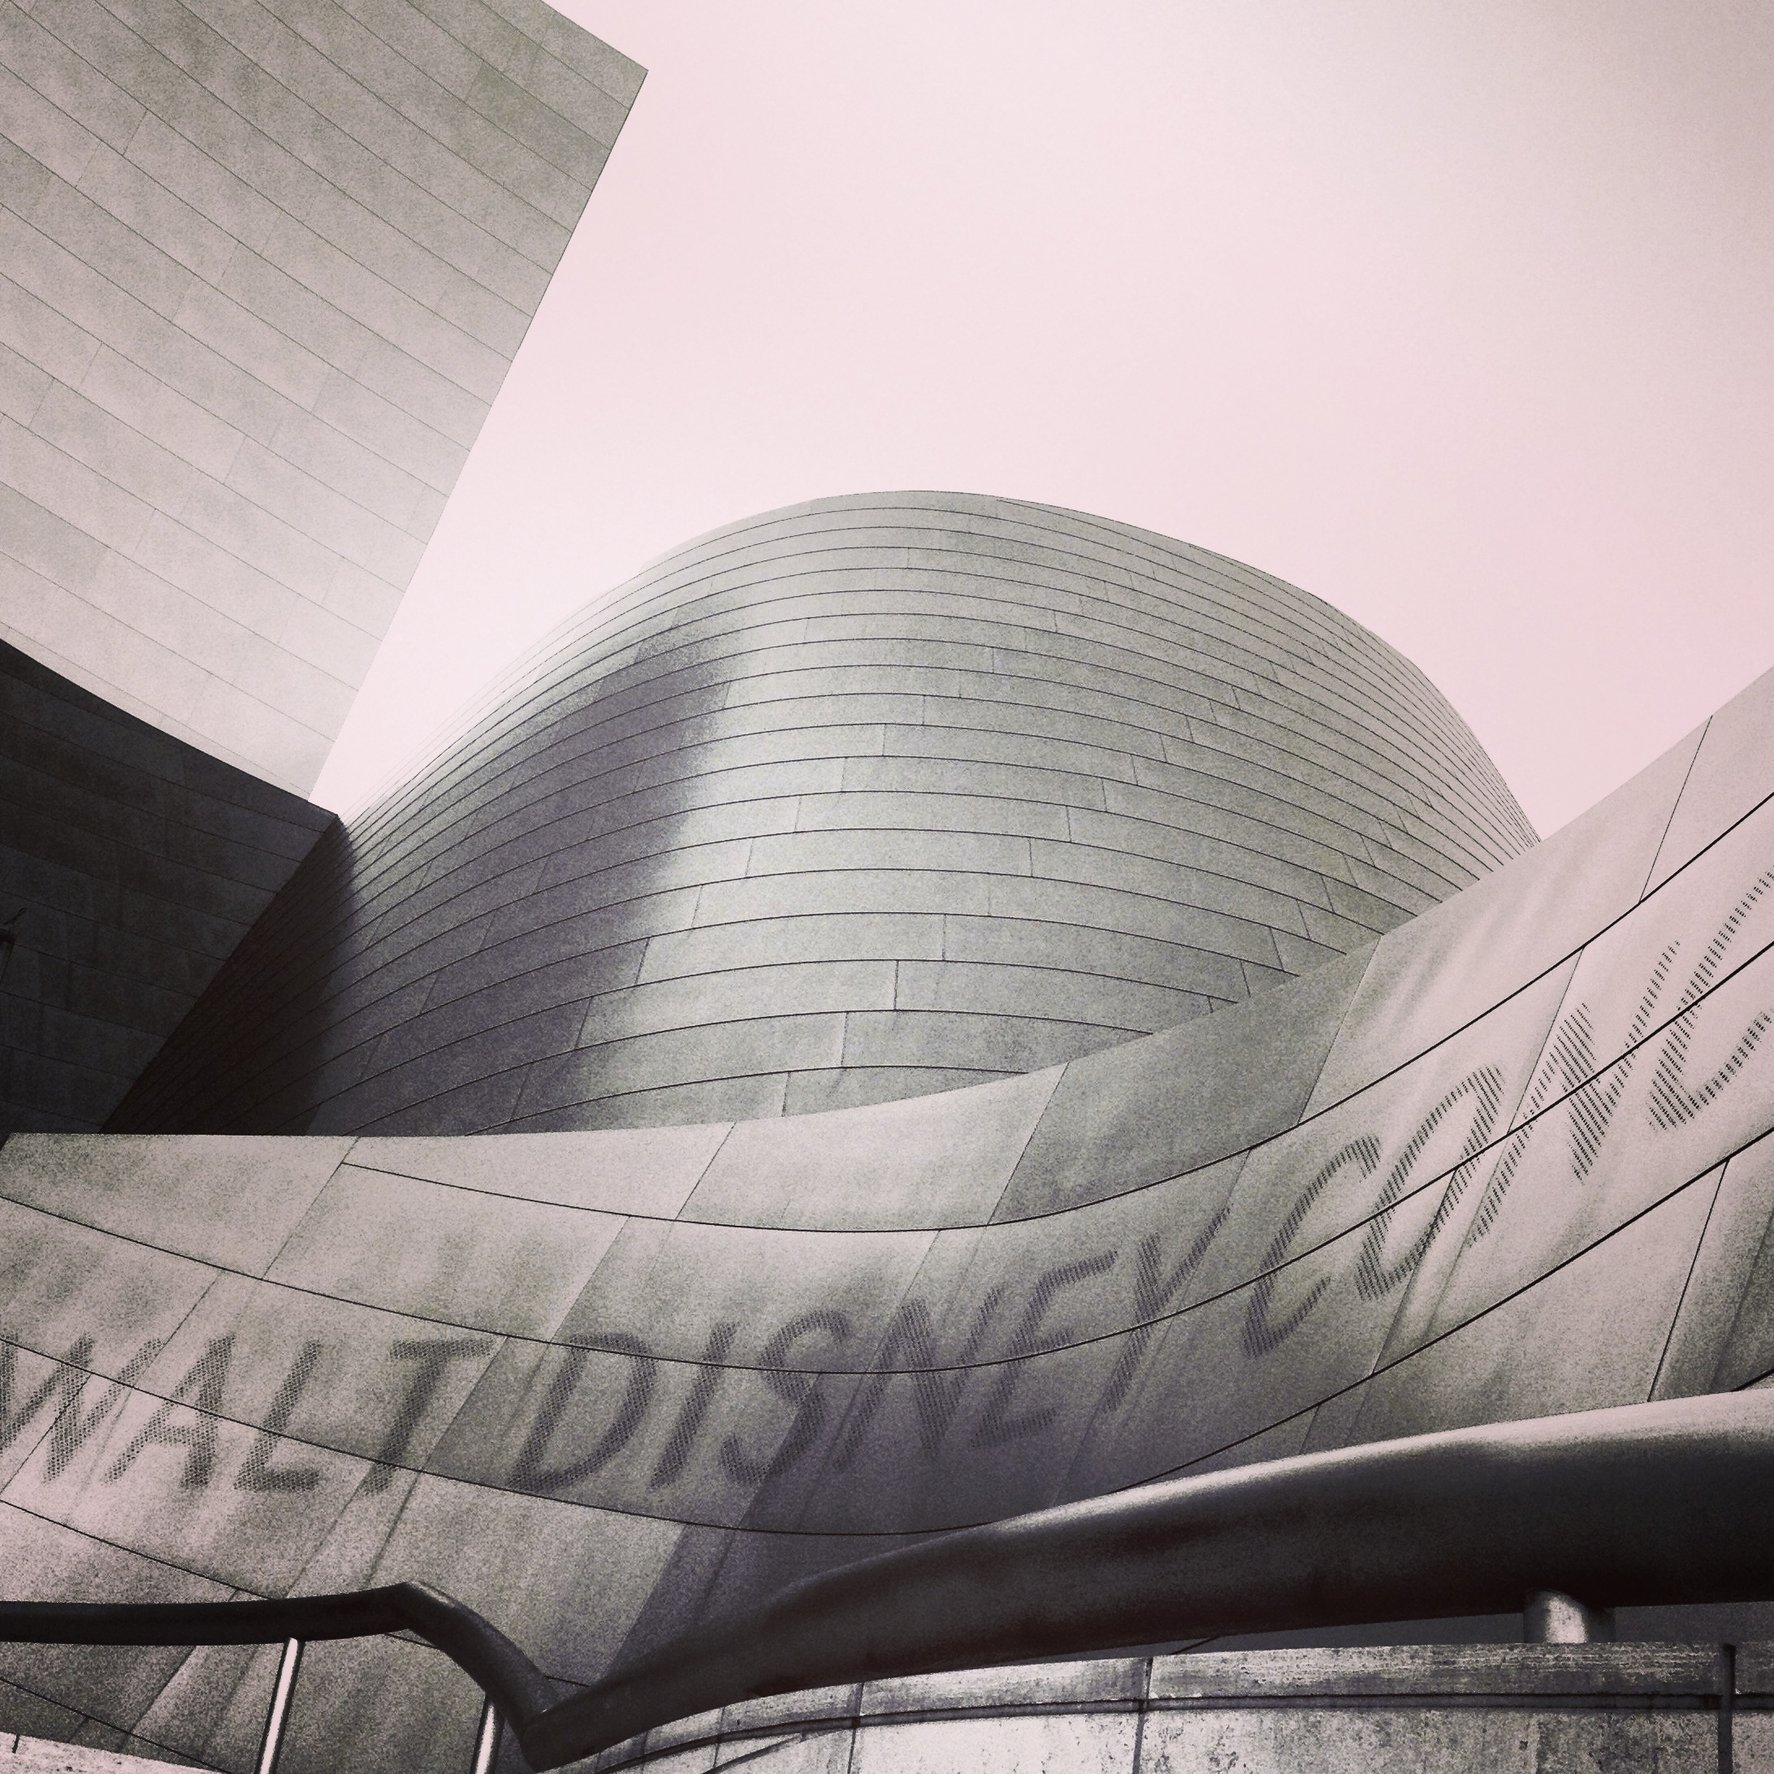 WALT DISNEY CONCERT HALL - B&W 4